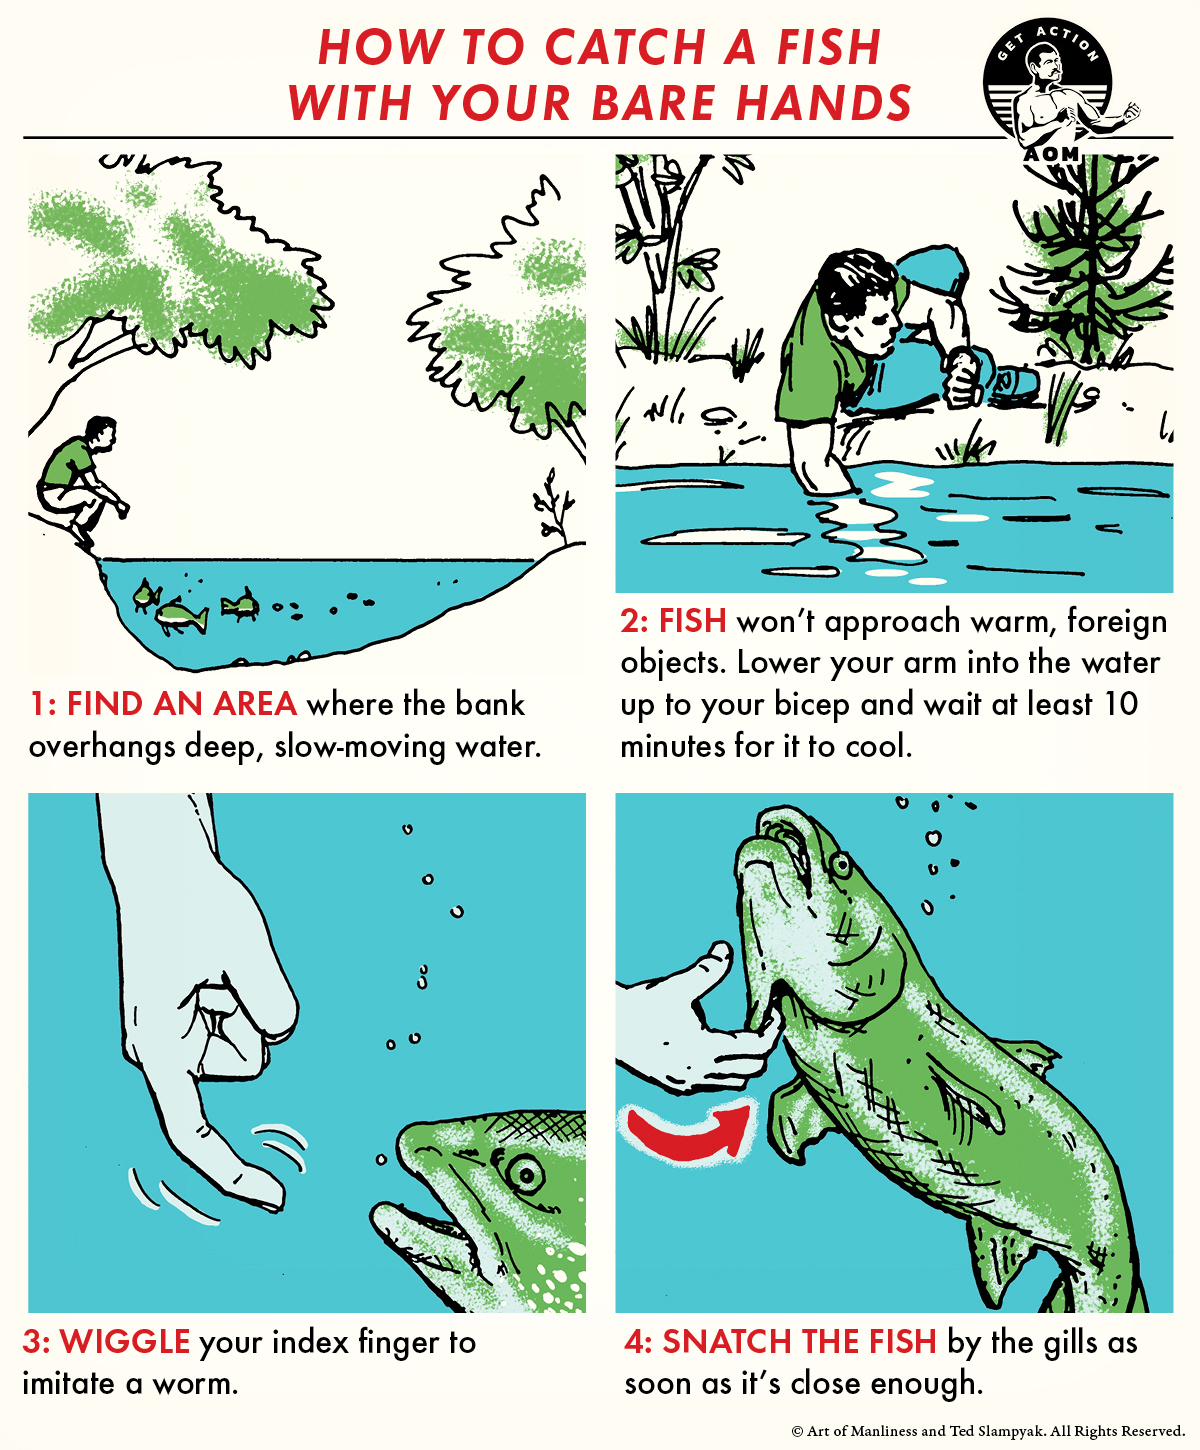 illustrated step-by-step guide how to catch a fish with bare hands.